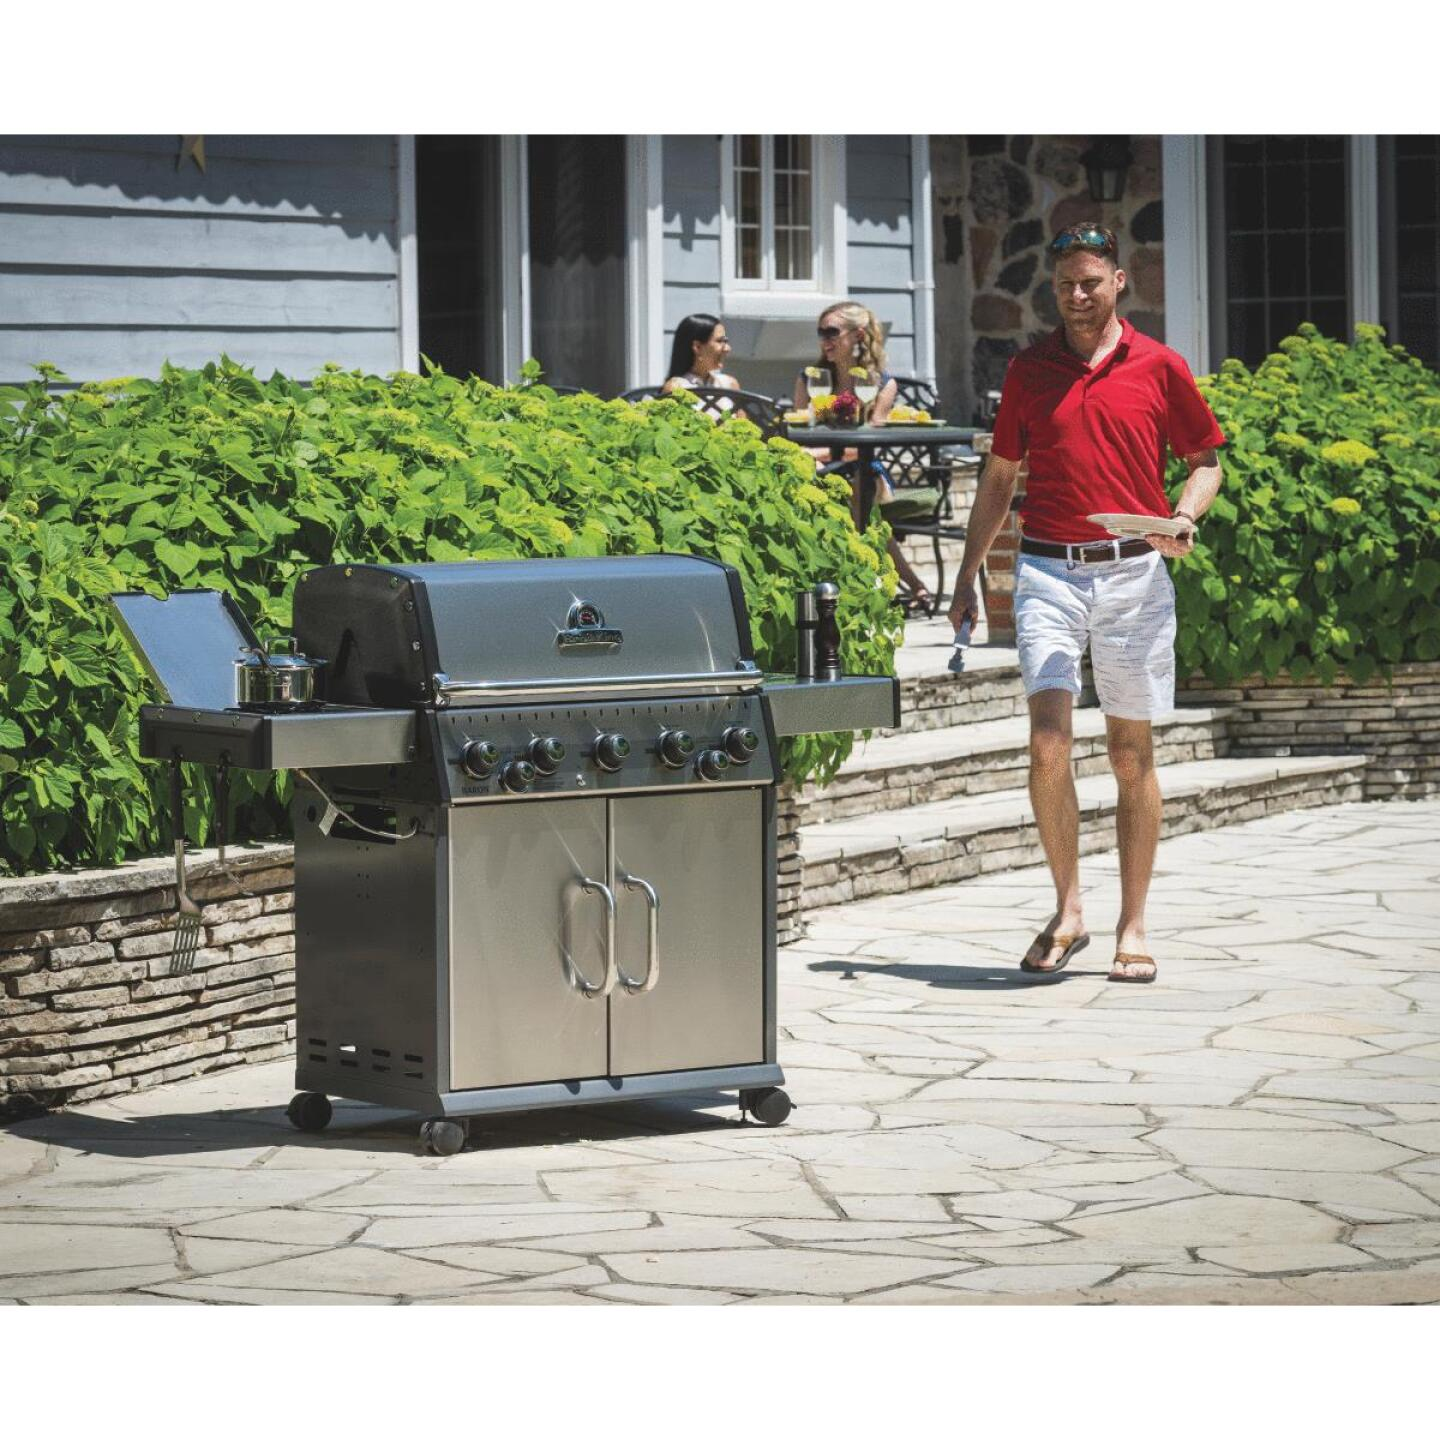 Broil King Baron S590 5-Burner Stainless Steel 50,000-BTU LP Gas Grill with 10,000-BTU Side Burner Image 2